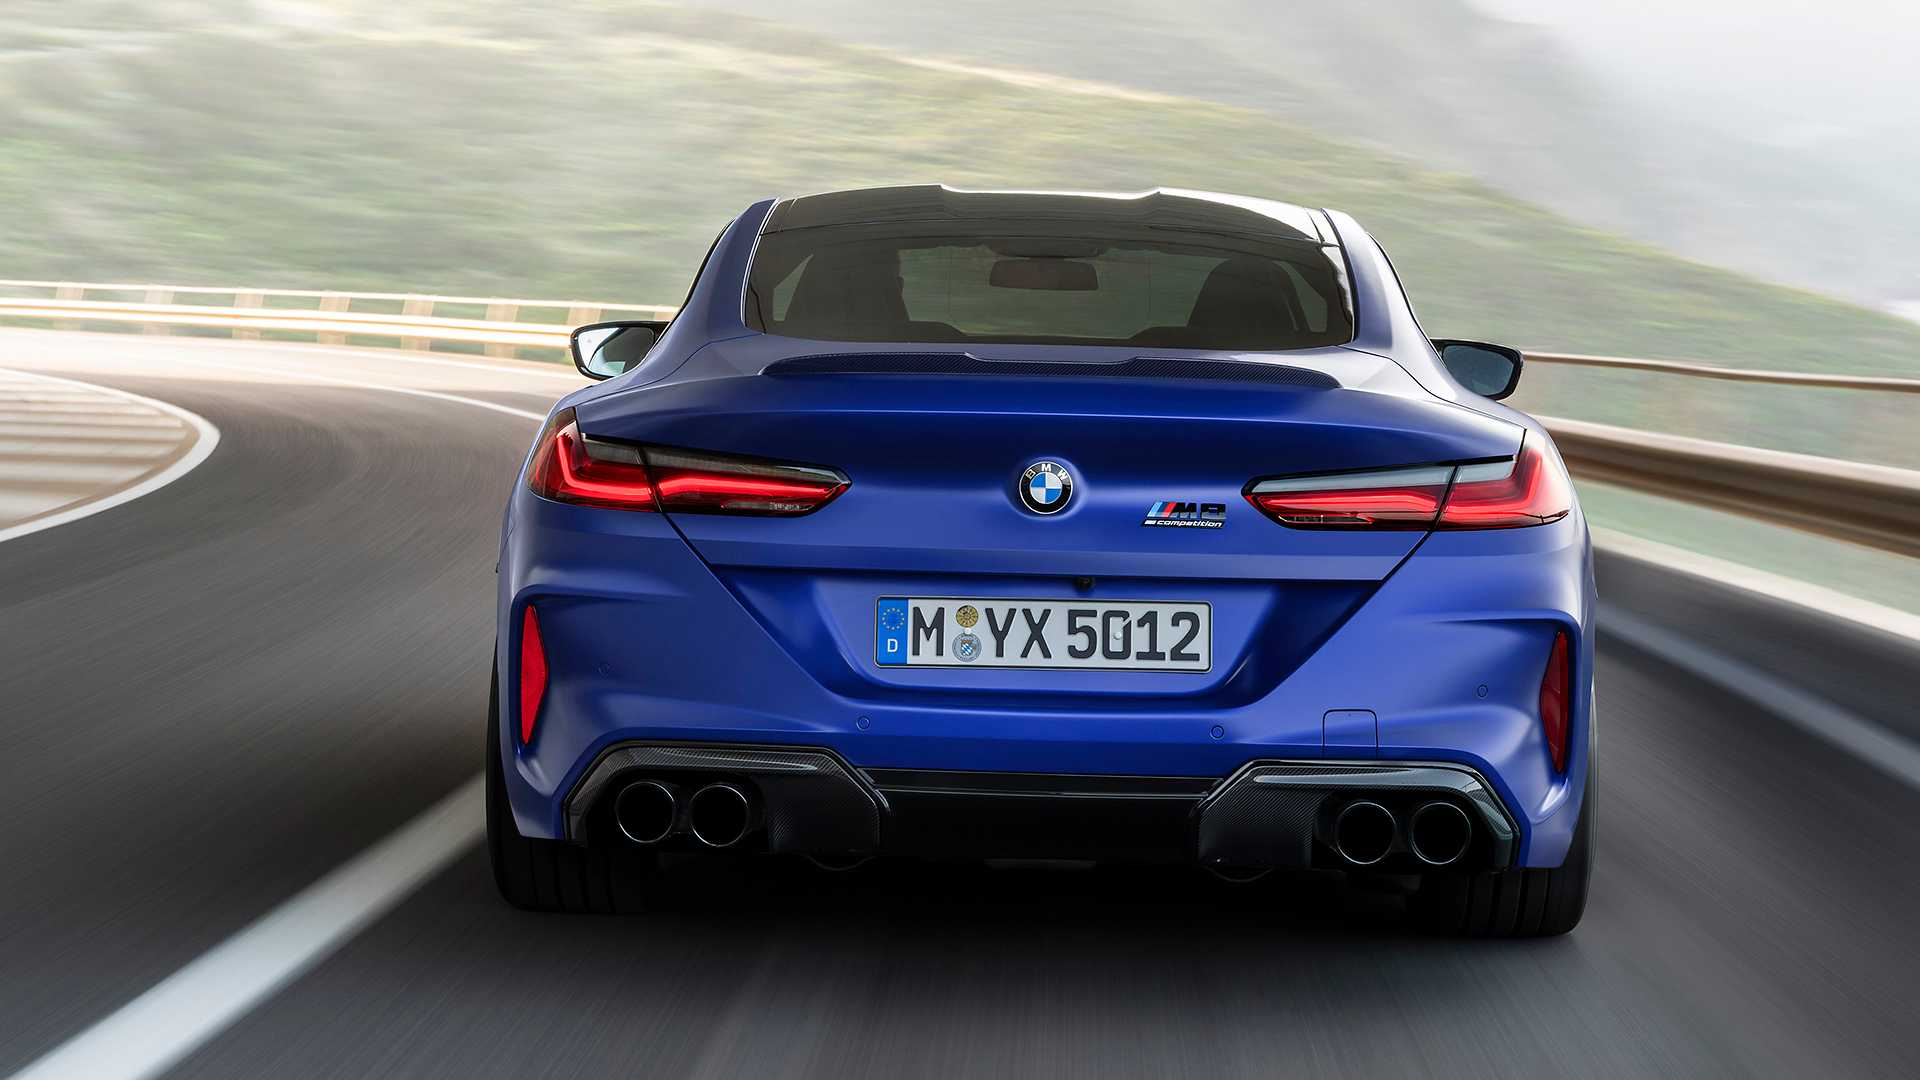 2019-bmw-m8-coupe-4